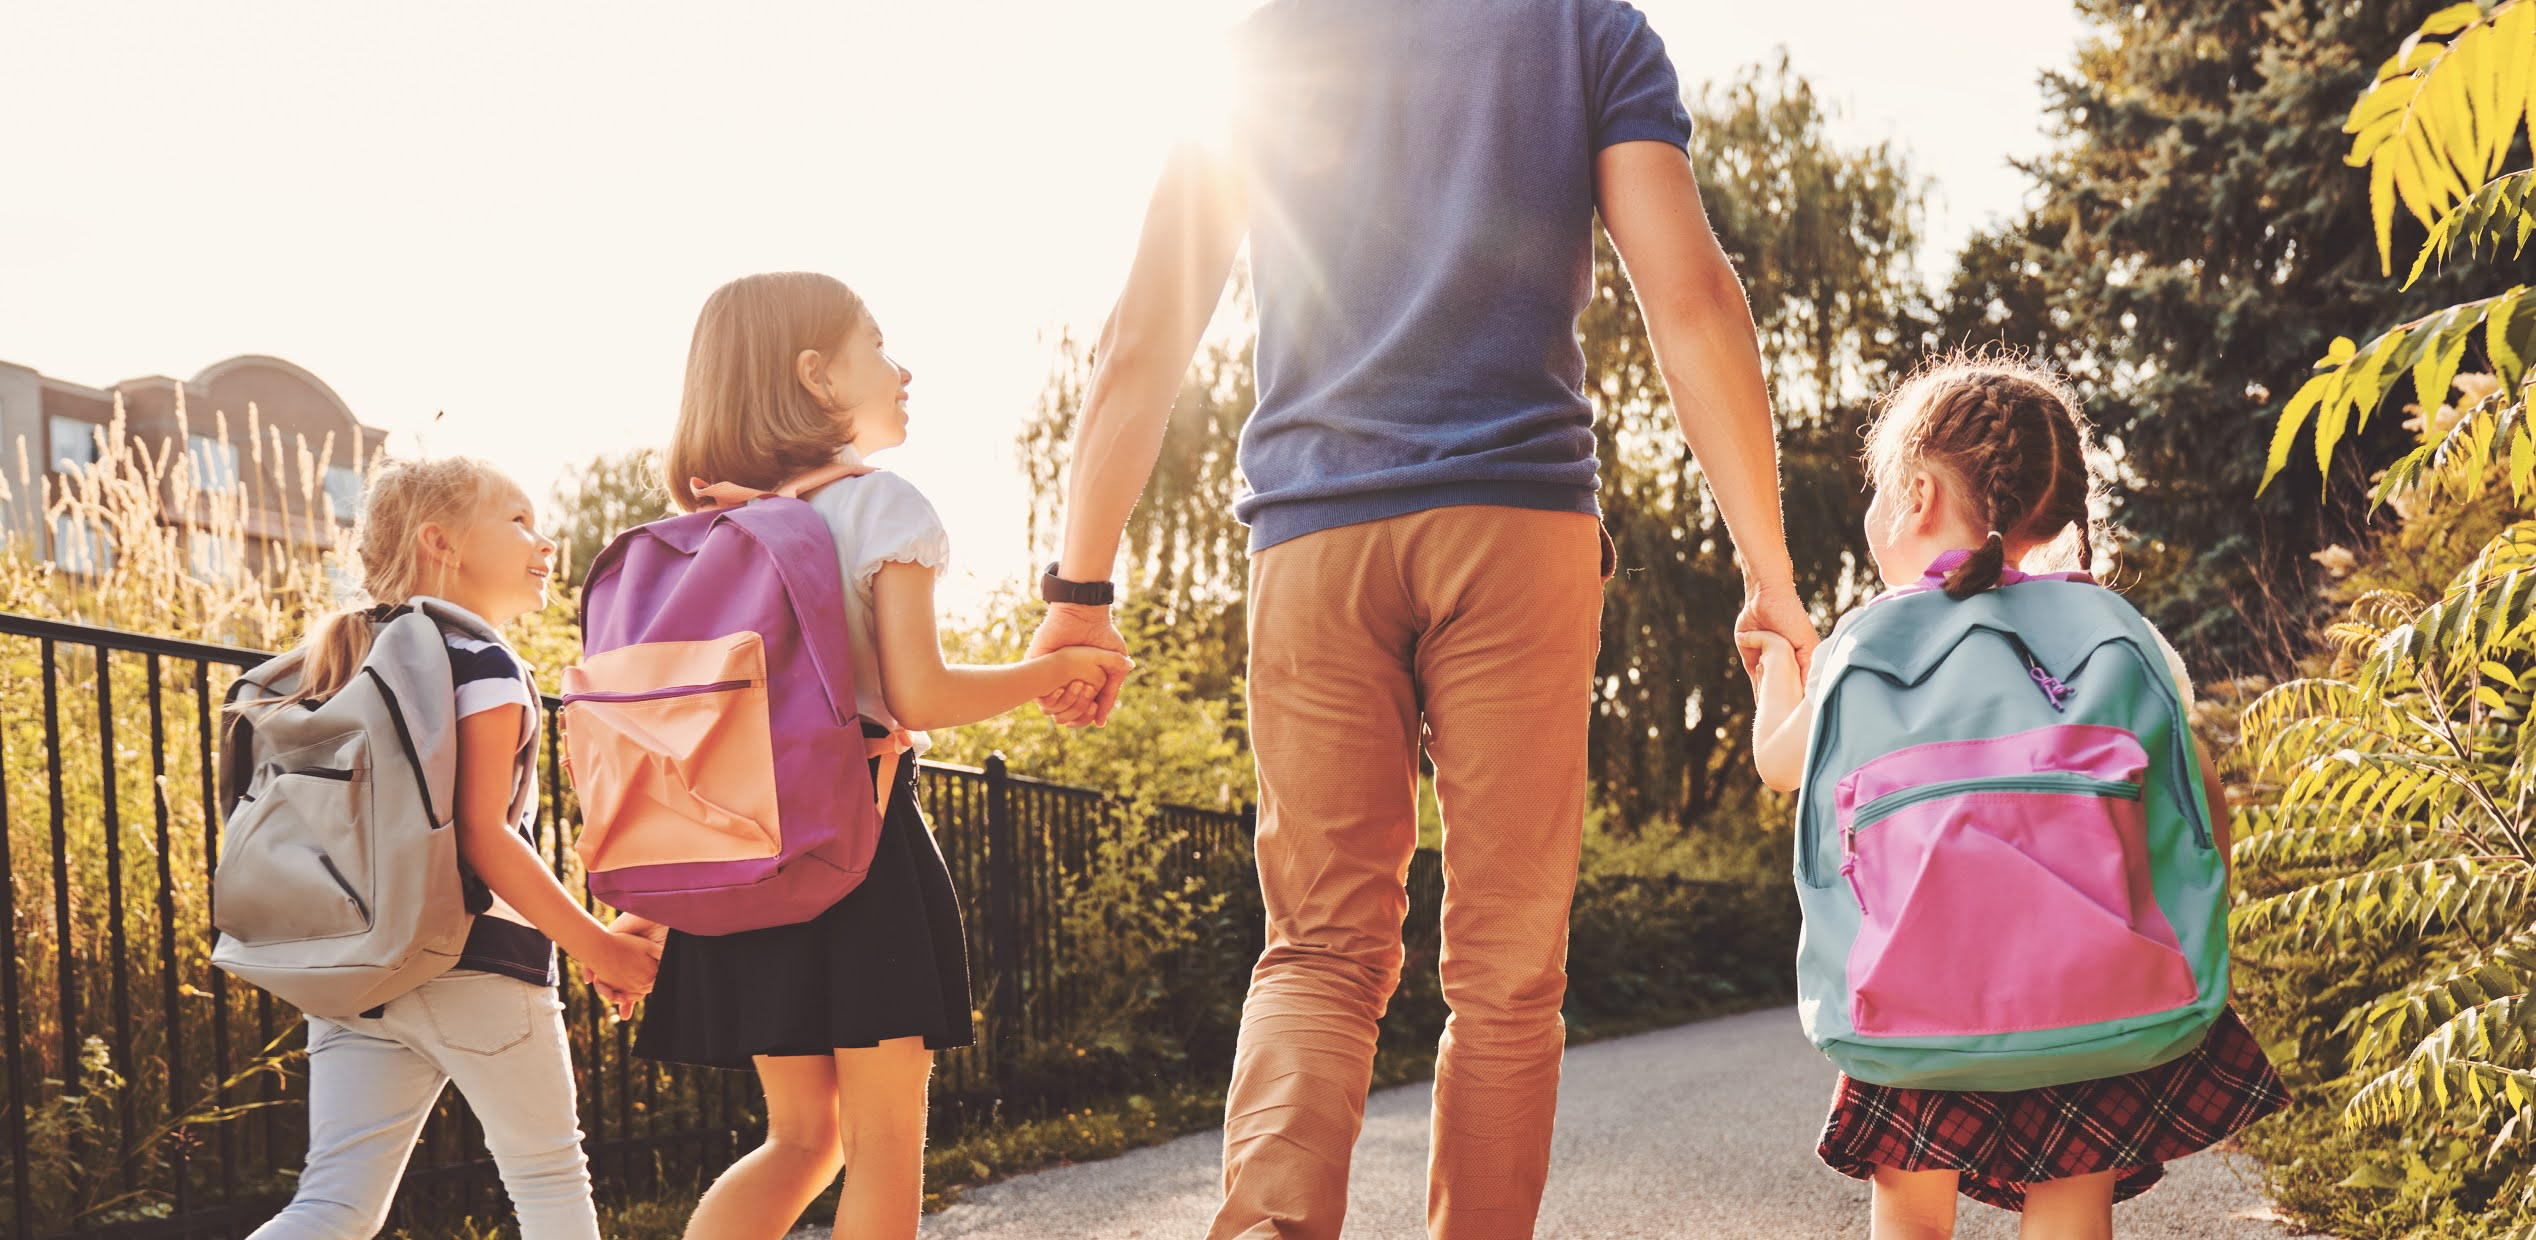 5 Things Children Learn From Your Adult Relationships